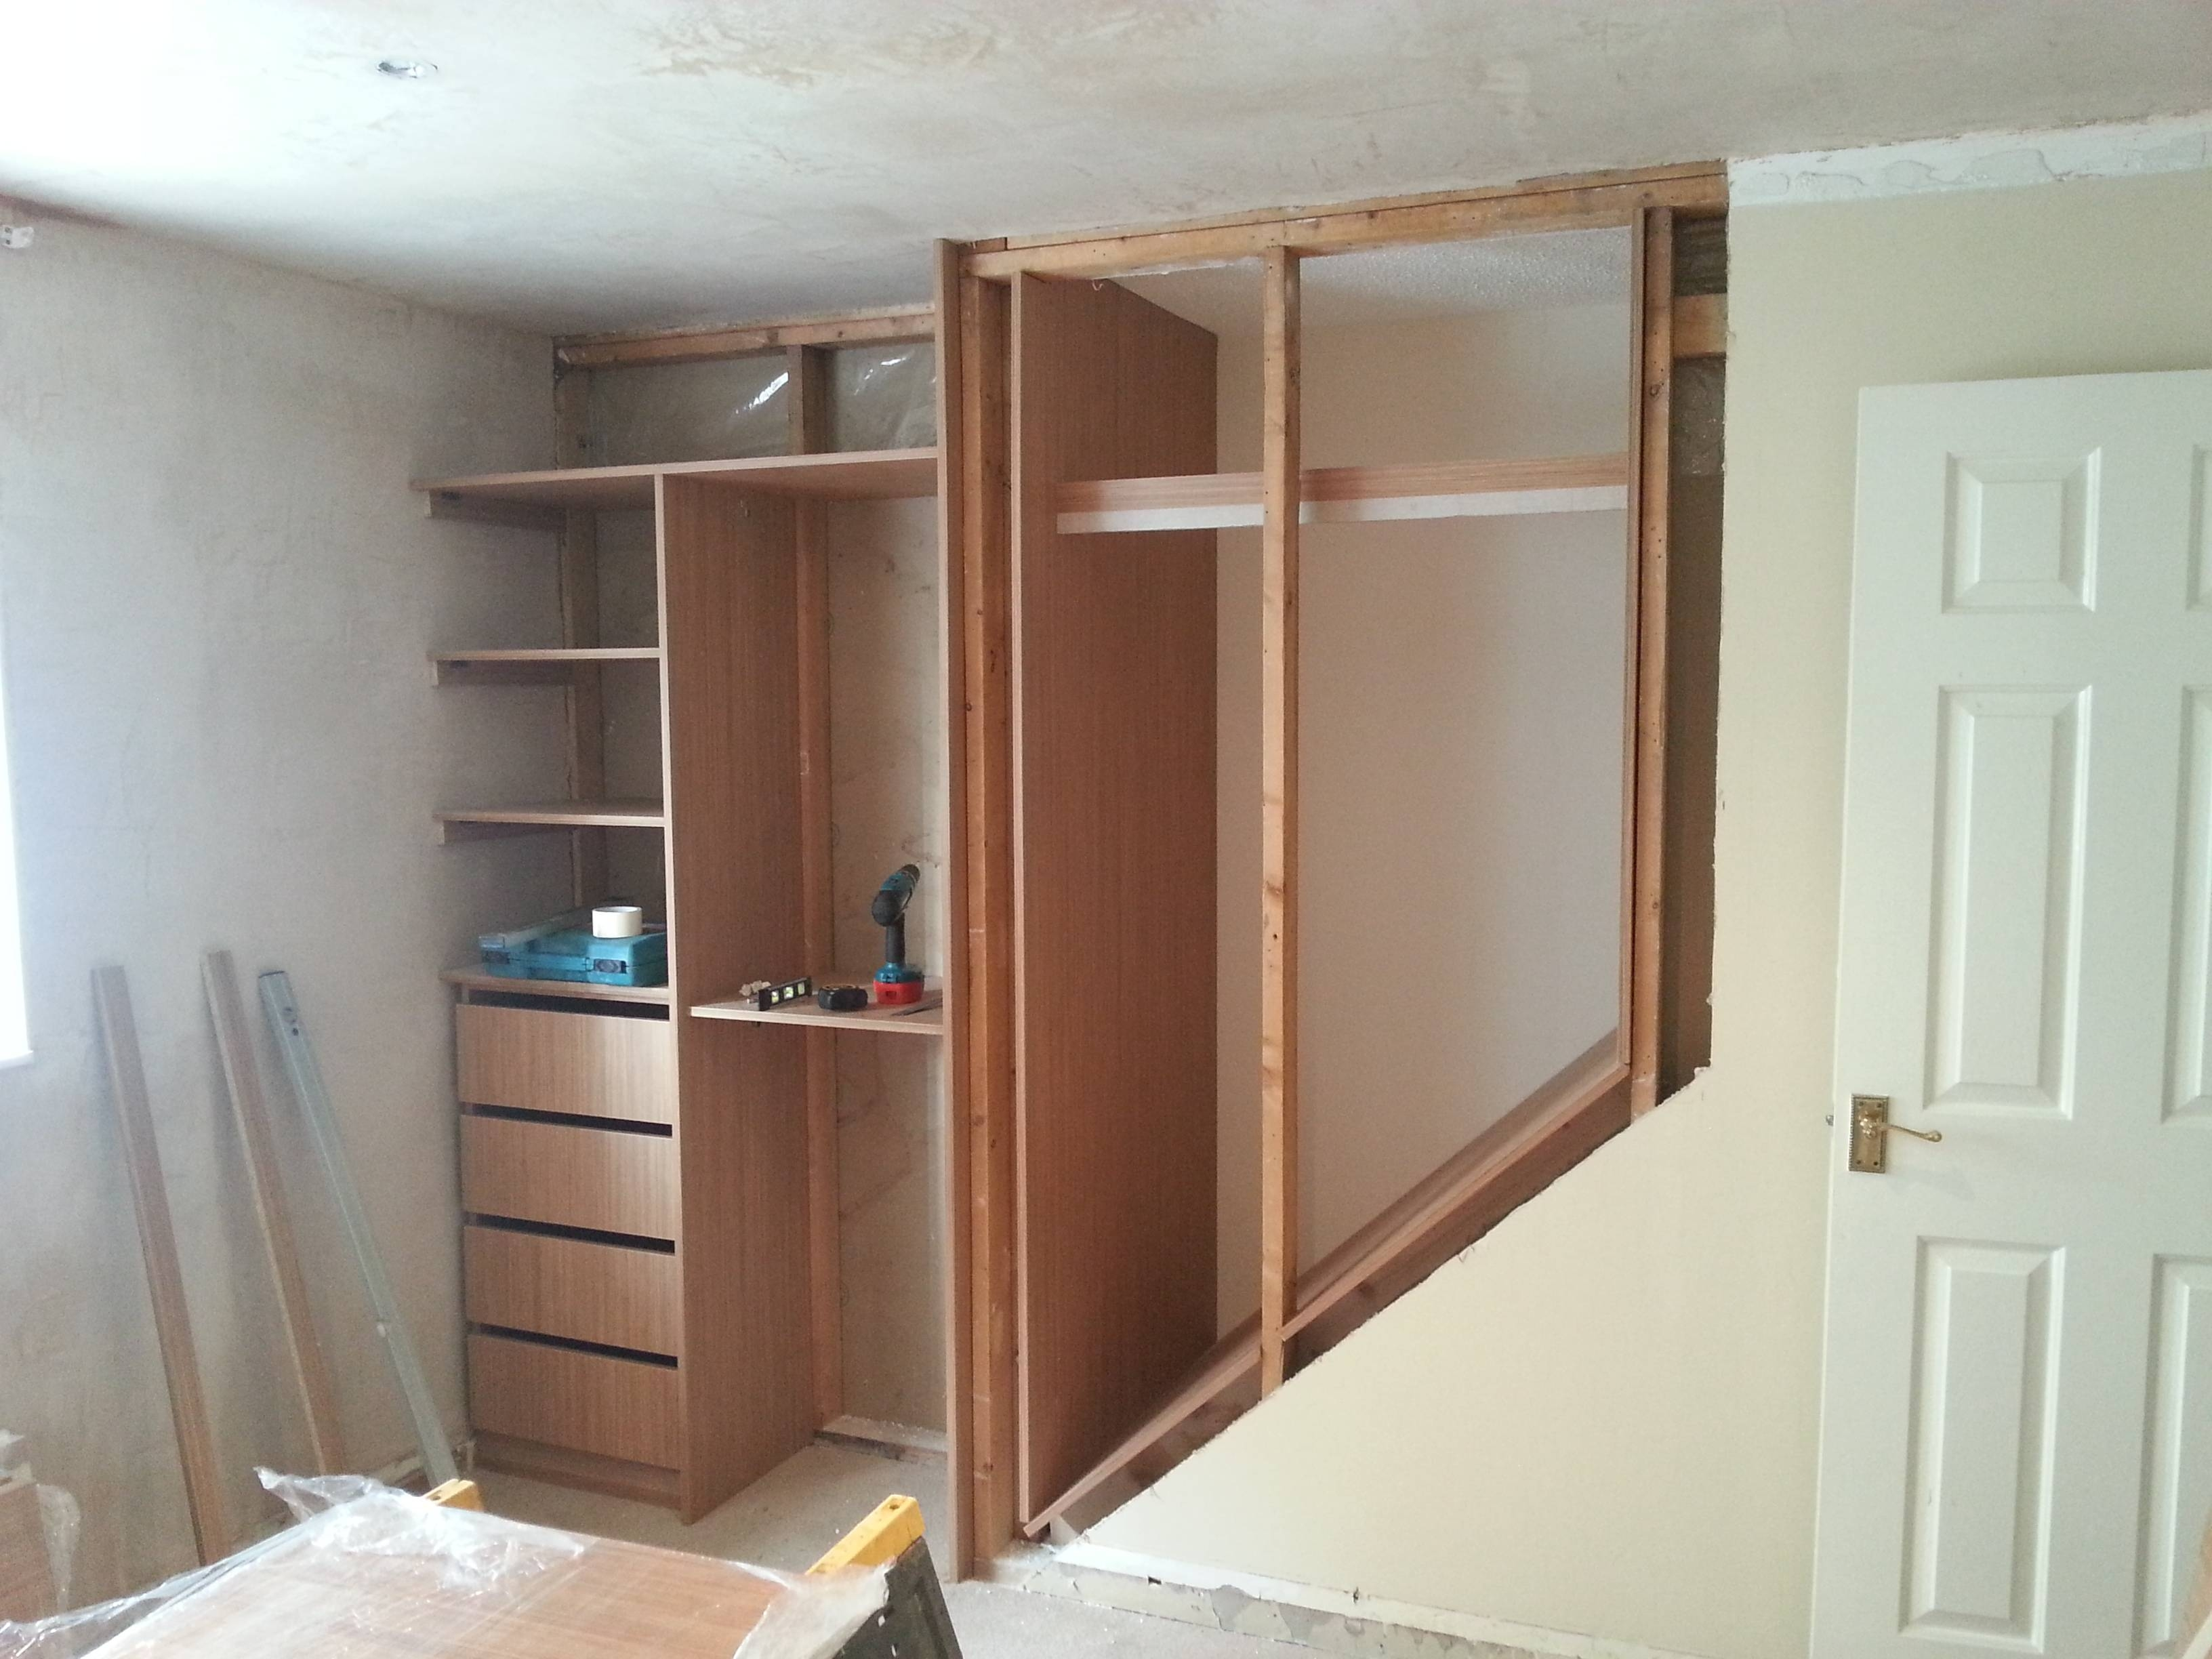 Real Room Designs | Image Gallery | Bedrooms in Built in Wardrobes With Tv Space (Image 28 of 30)